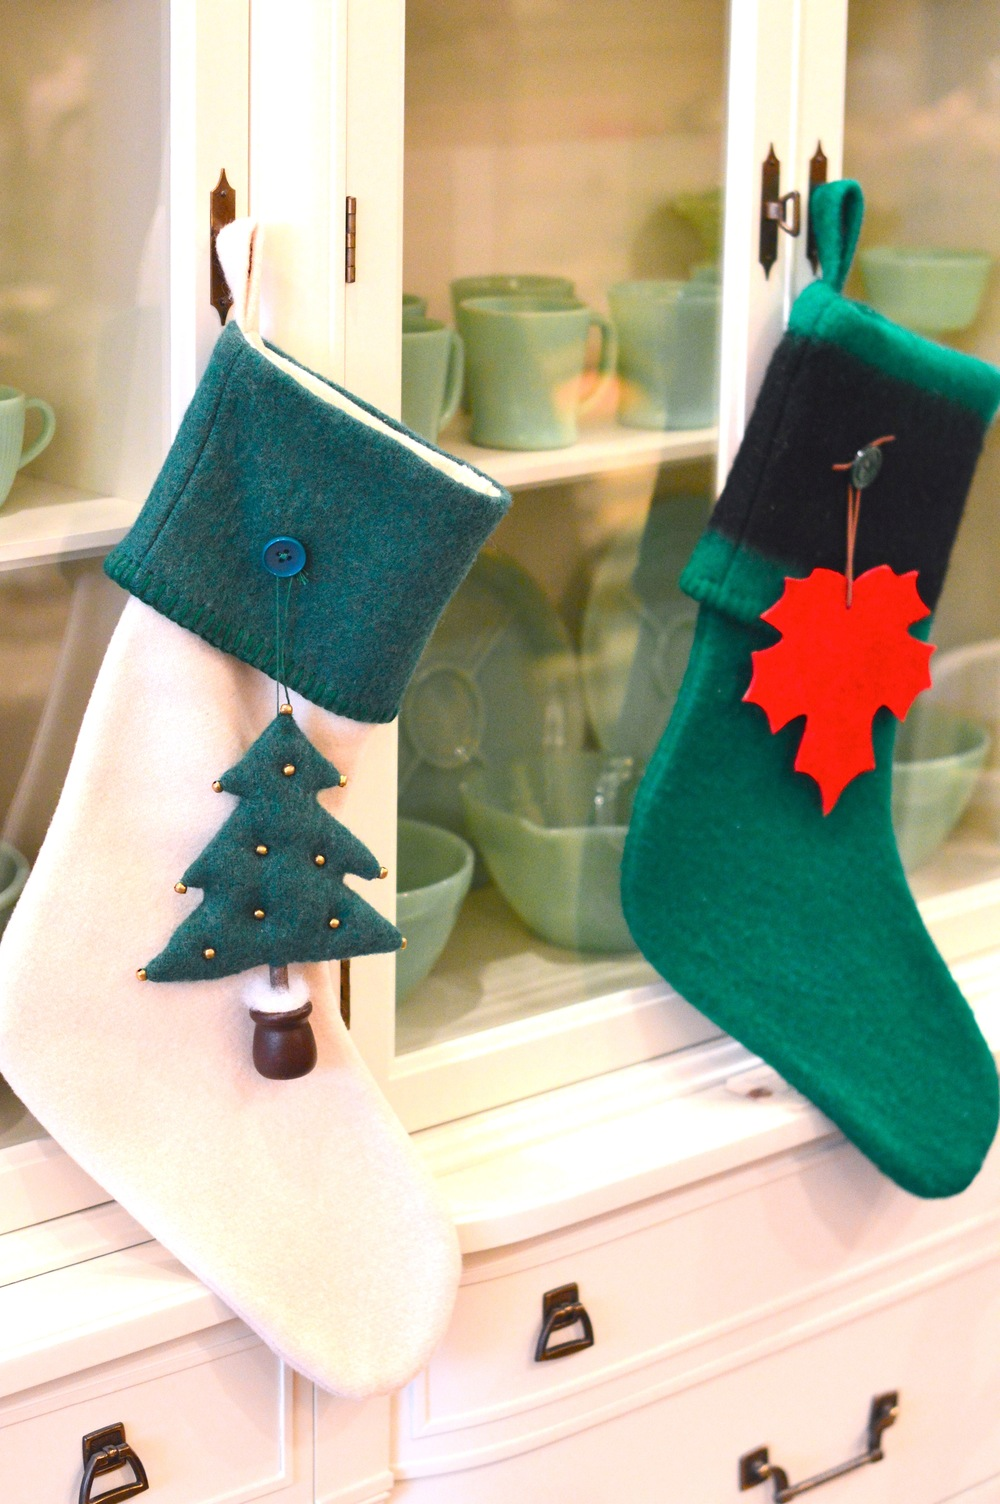 These stockings are handmade by Lynne  Belden out of reclaimed Hudson Bay blankets and each is adorned with an ornament like wooden skis, snowmen and maple leafs.